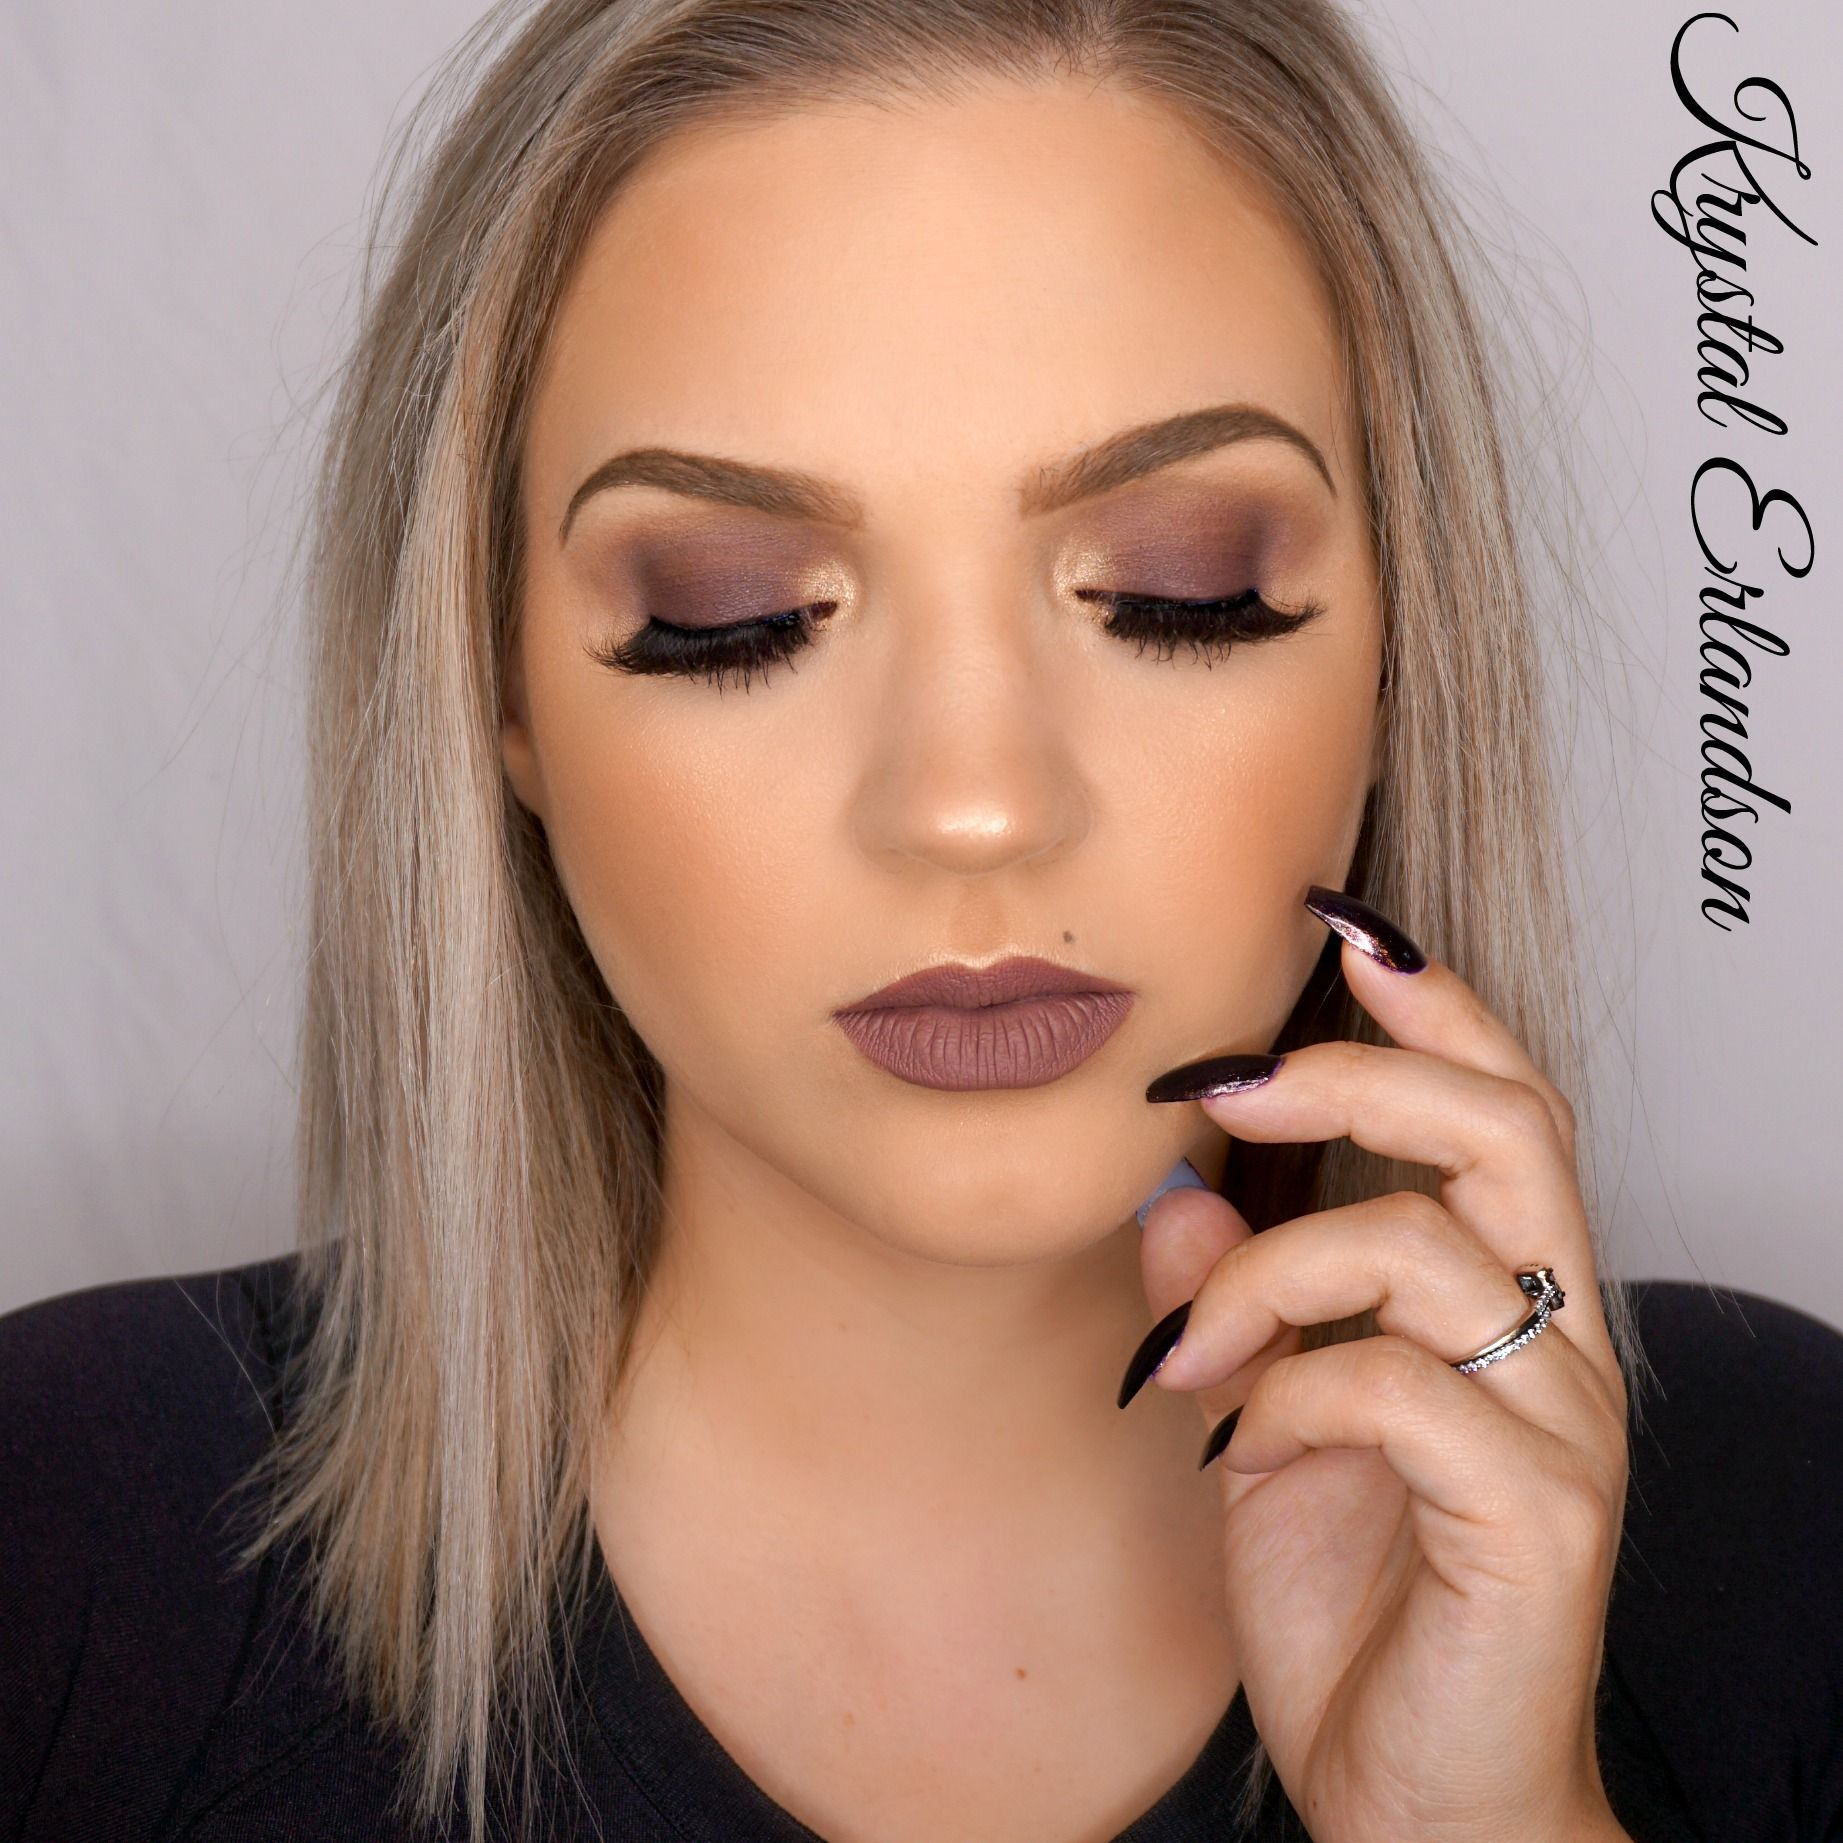 Everyday smokey eye makeup tutorial makeup geek makeup ideas everyday smokey eye makeup tutorial makeup geek baditri Choice Image